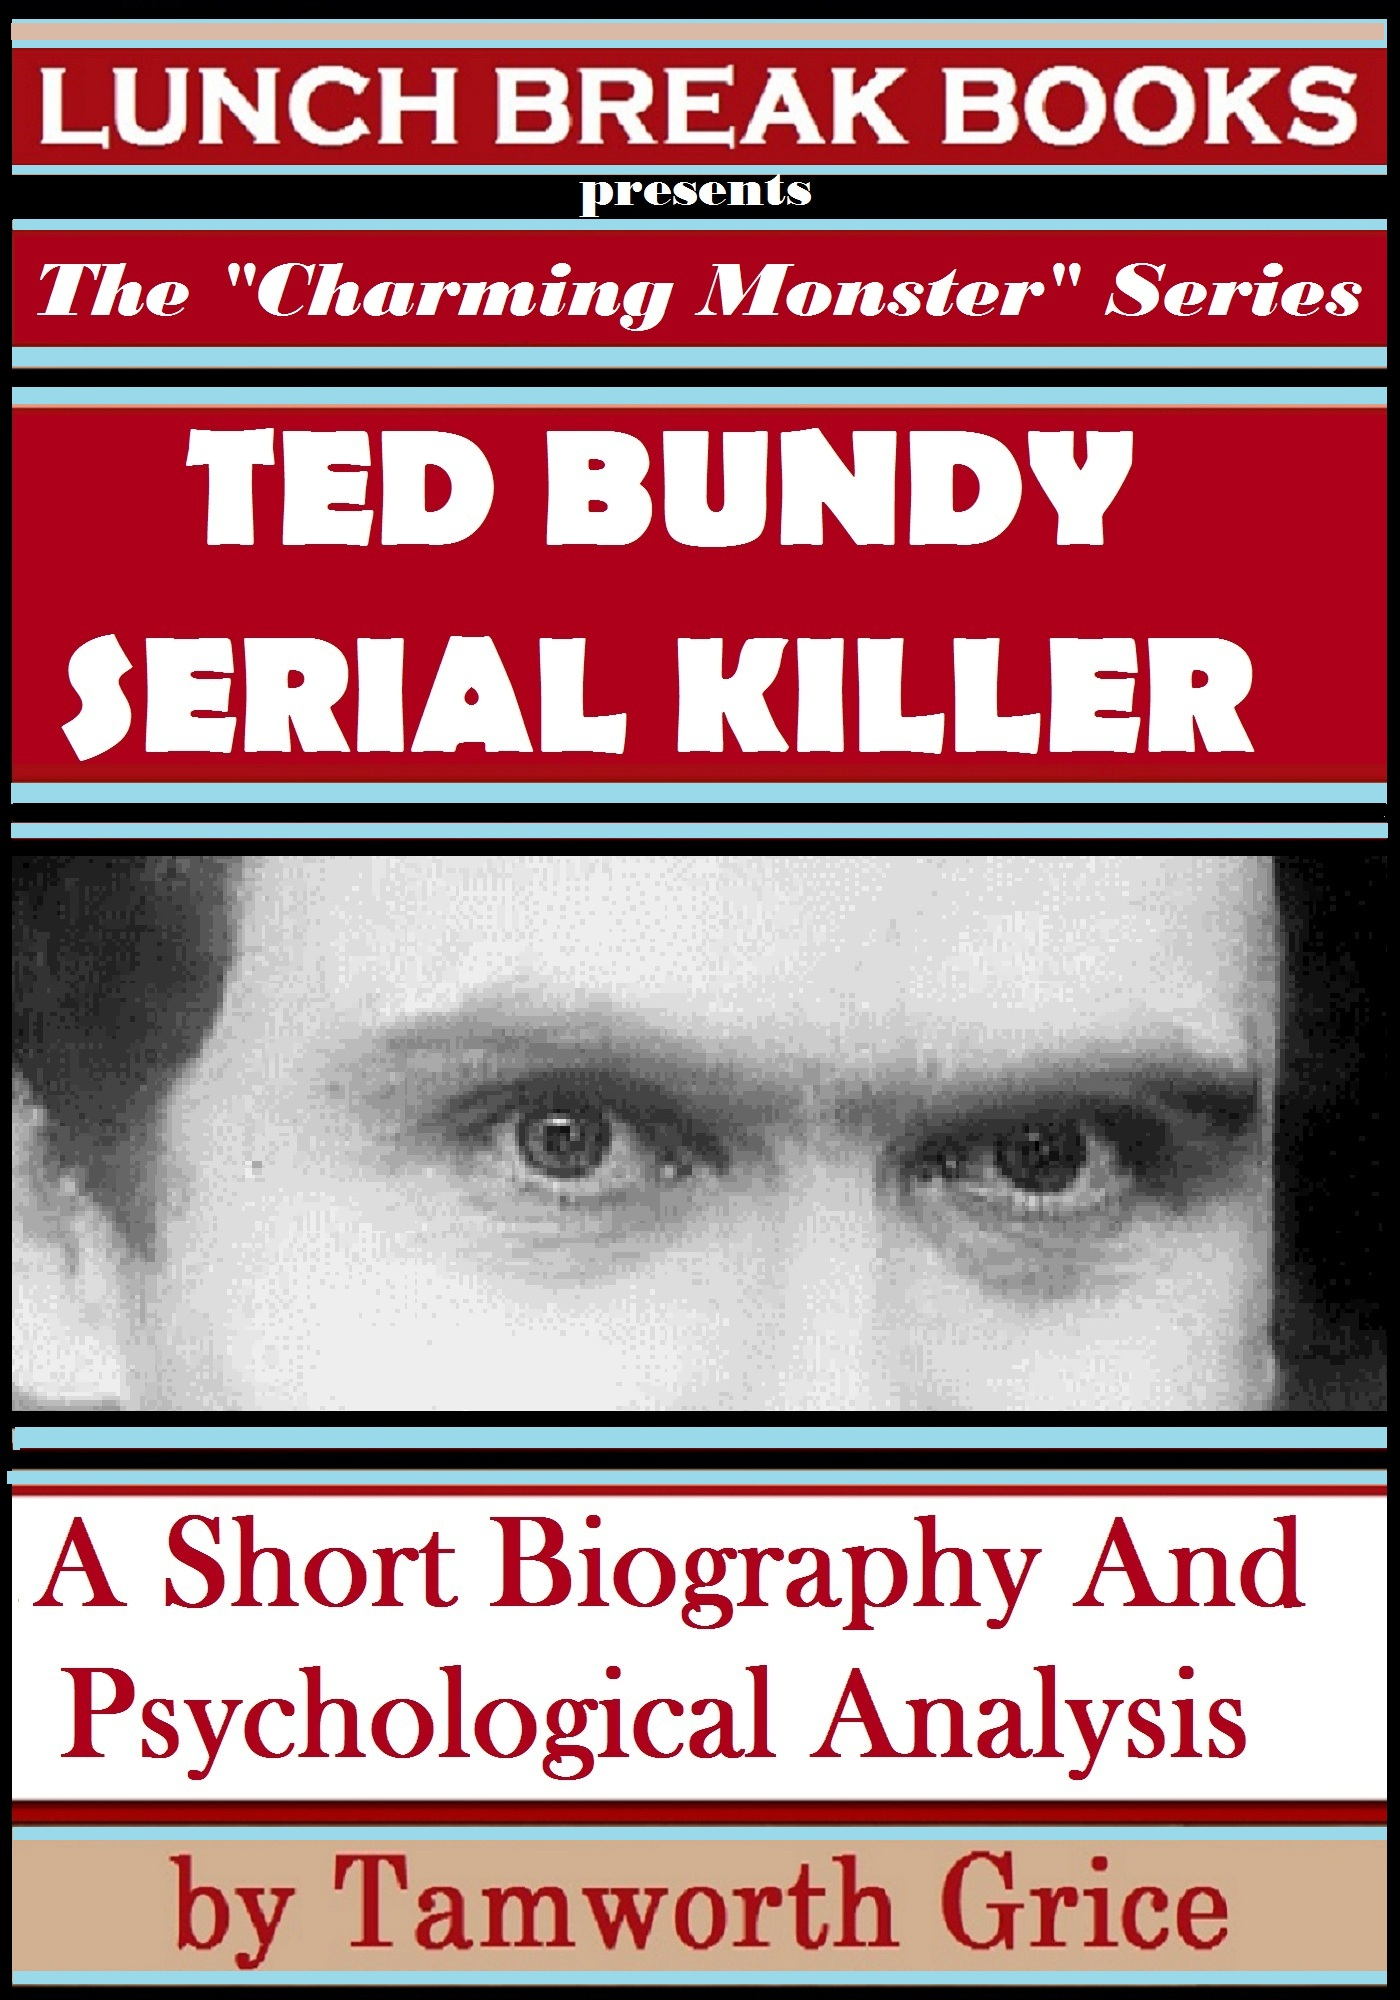 an analysis of the appearence of serial killers and the behavior of theodore bundy The serial killer asked christian bundy told dobson about the influence of pornography on his behavior bundy said he began ted bundy's confessions to.